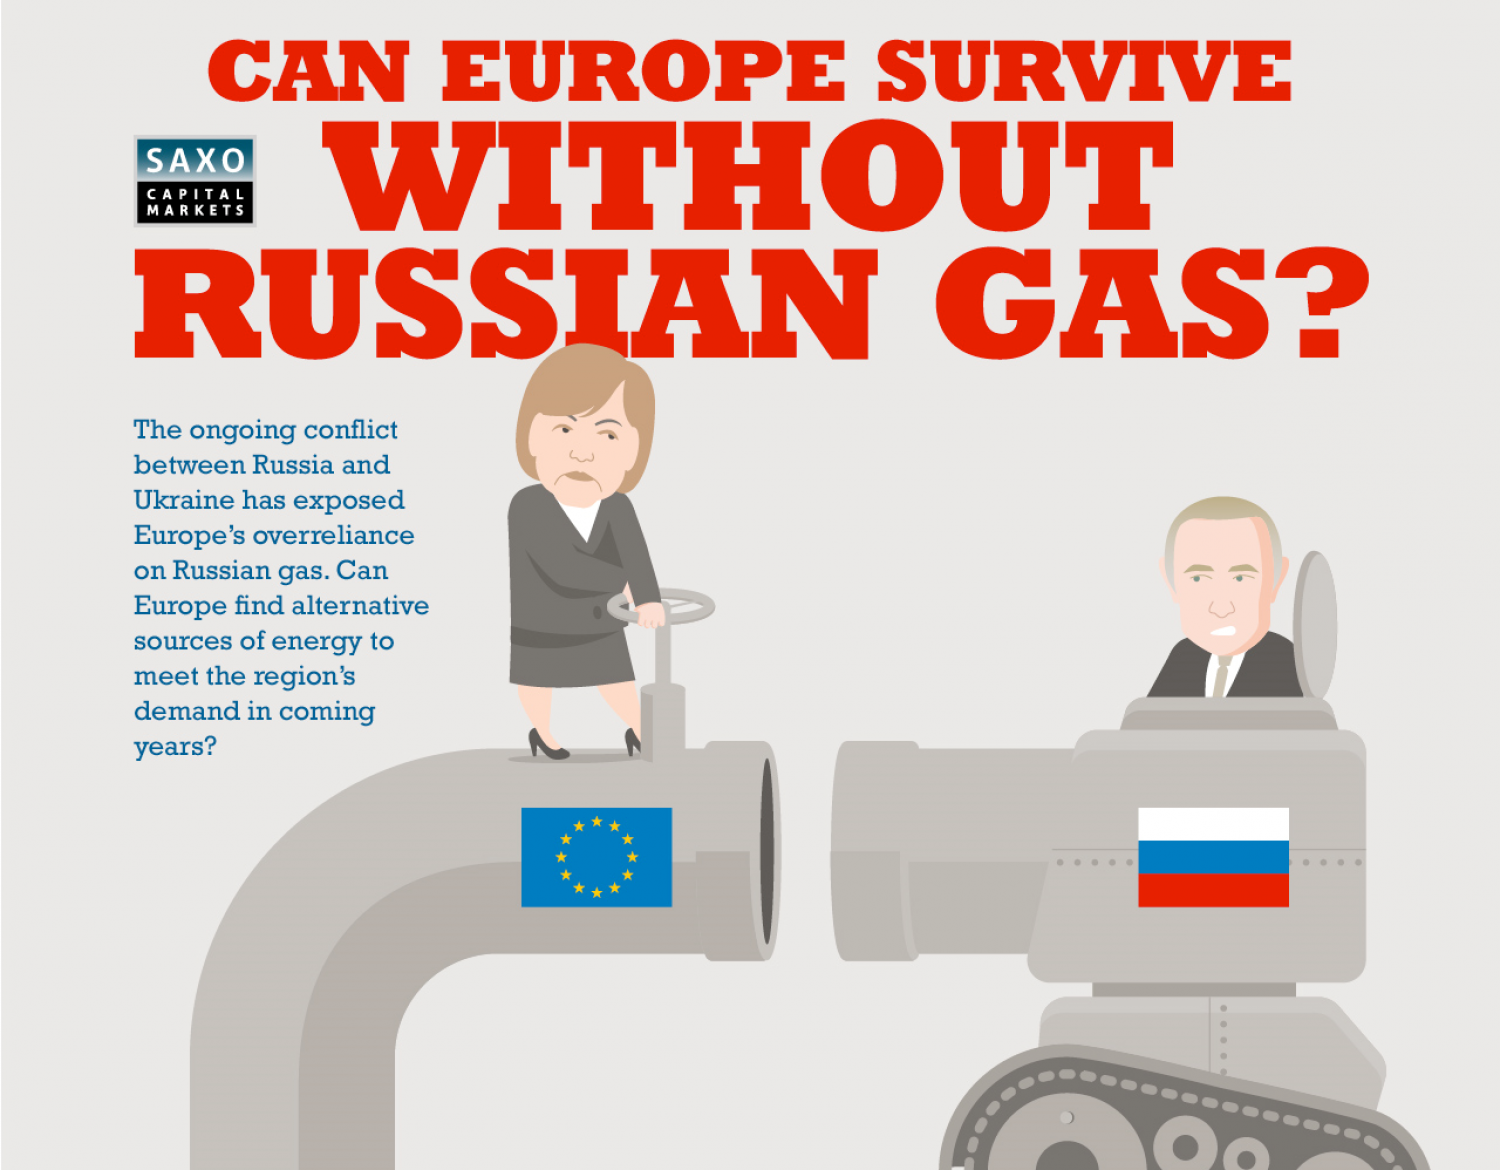 Can Europe Survive Without Russian Gas? Infographic